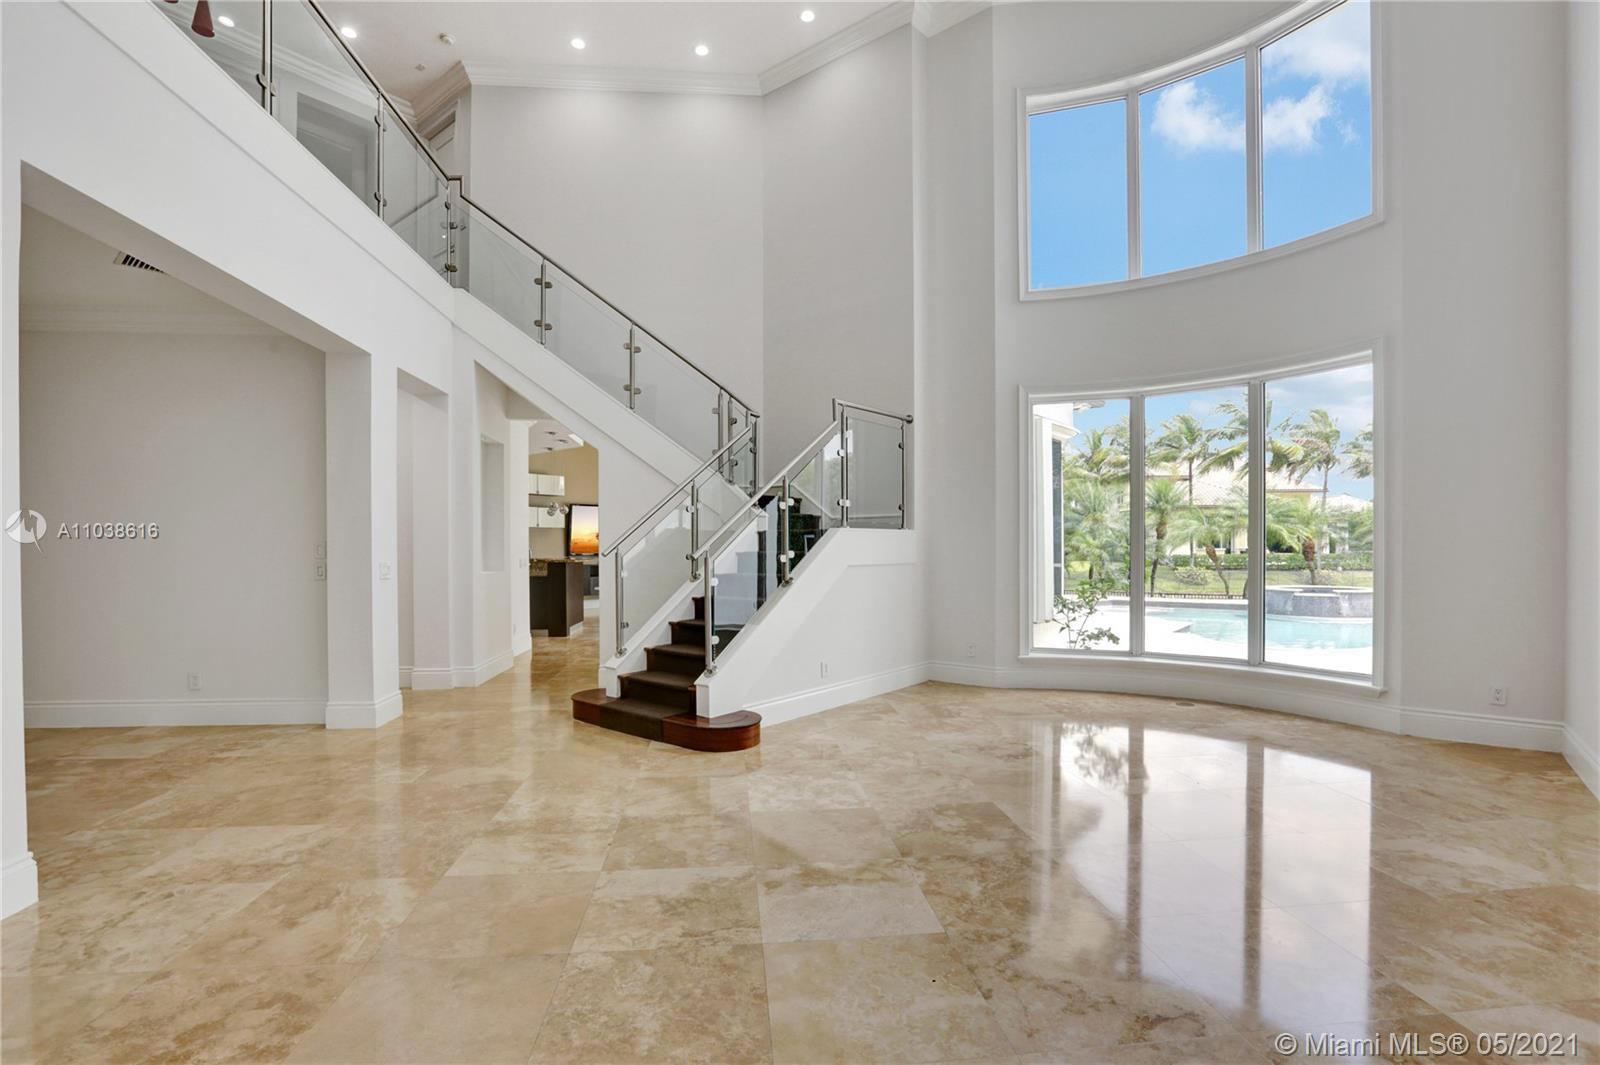 Come see this bright and airy sprawling home in the prestigious community of HAWKS LANDING. This re